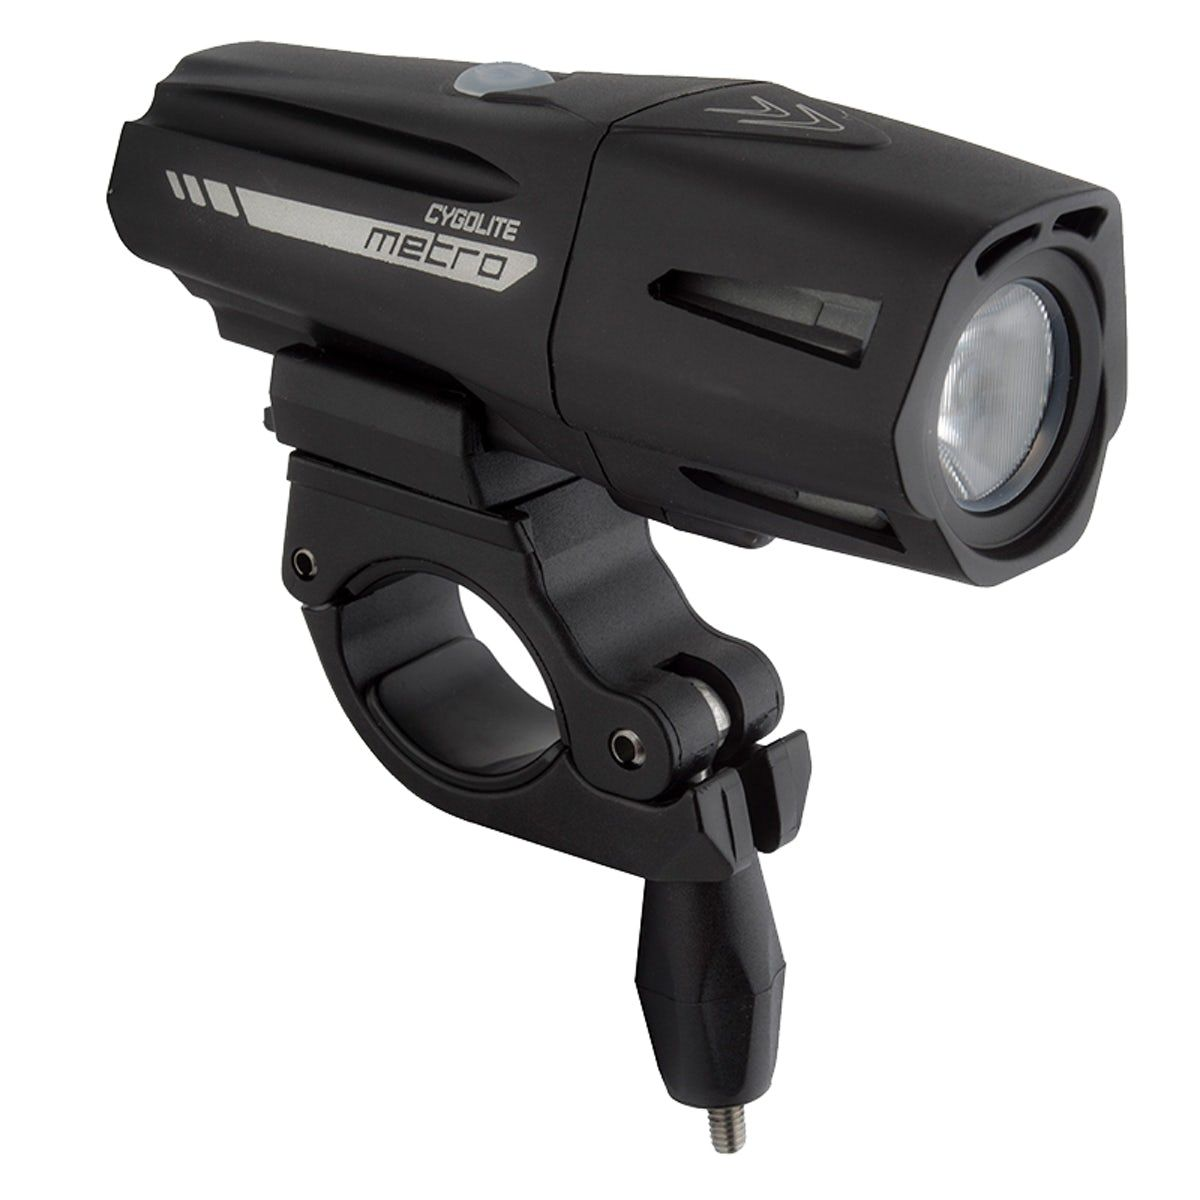 Cygo Lite Metro Pro 1100 Front Bike Light Mec In 2020 With